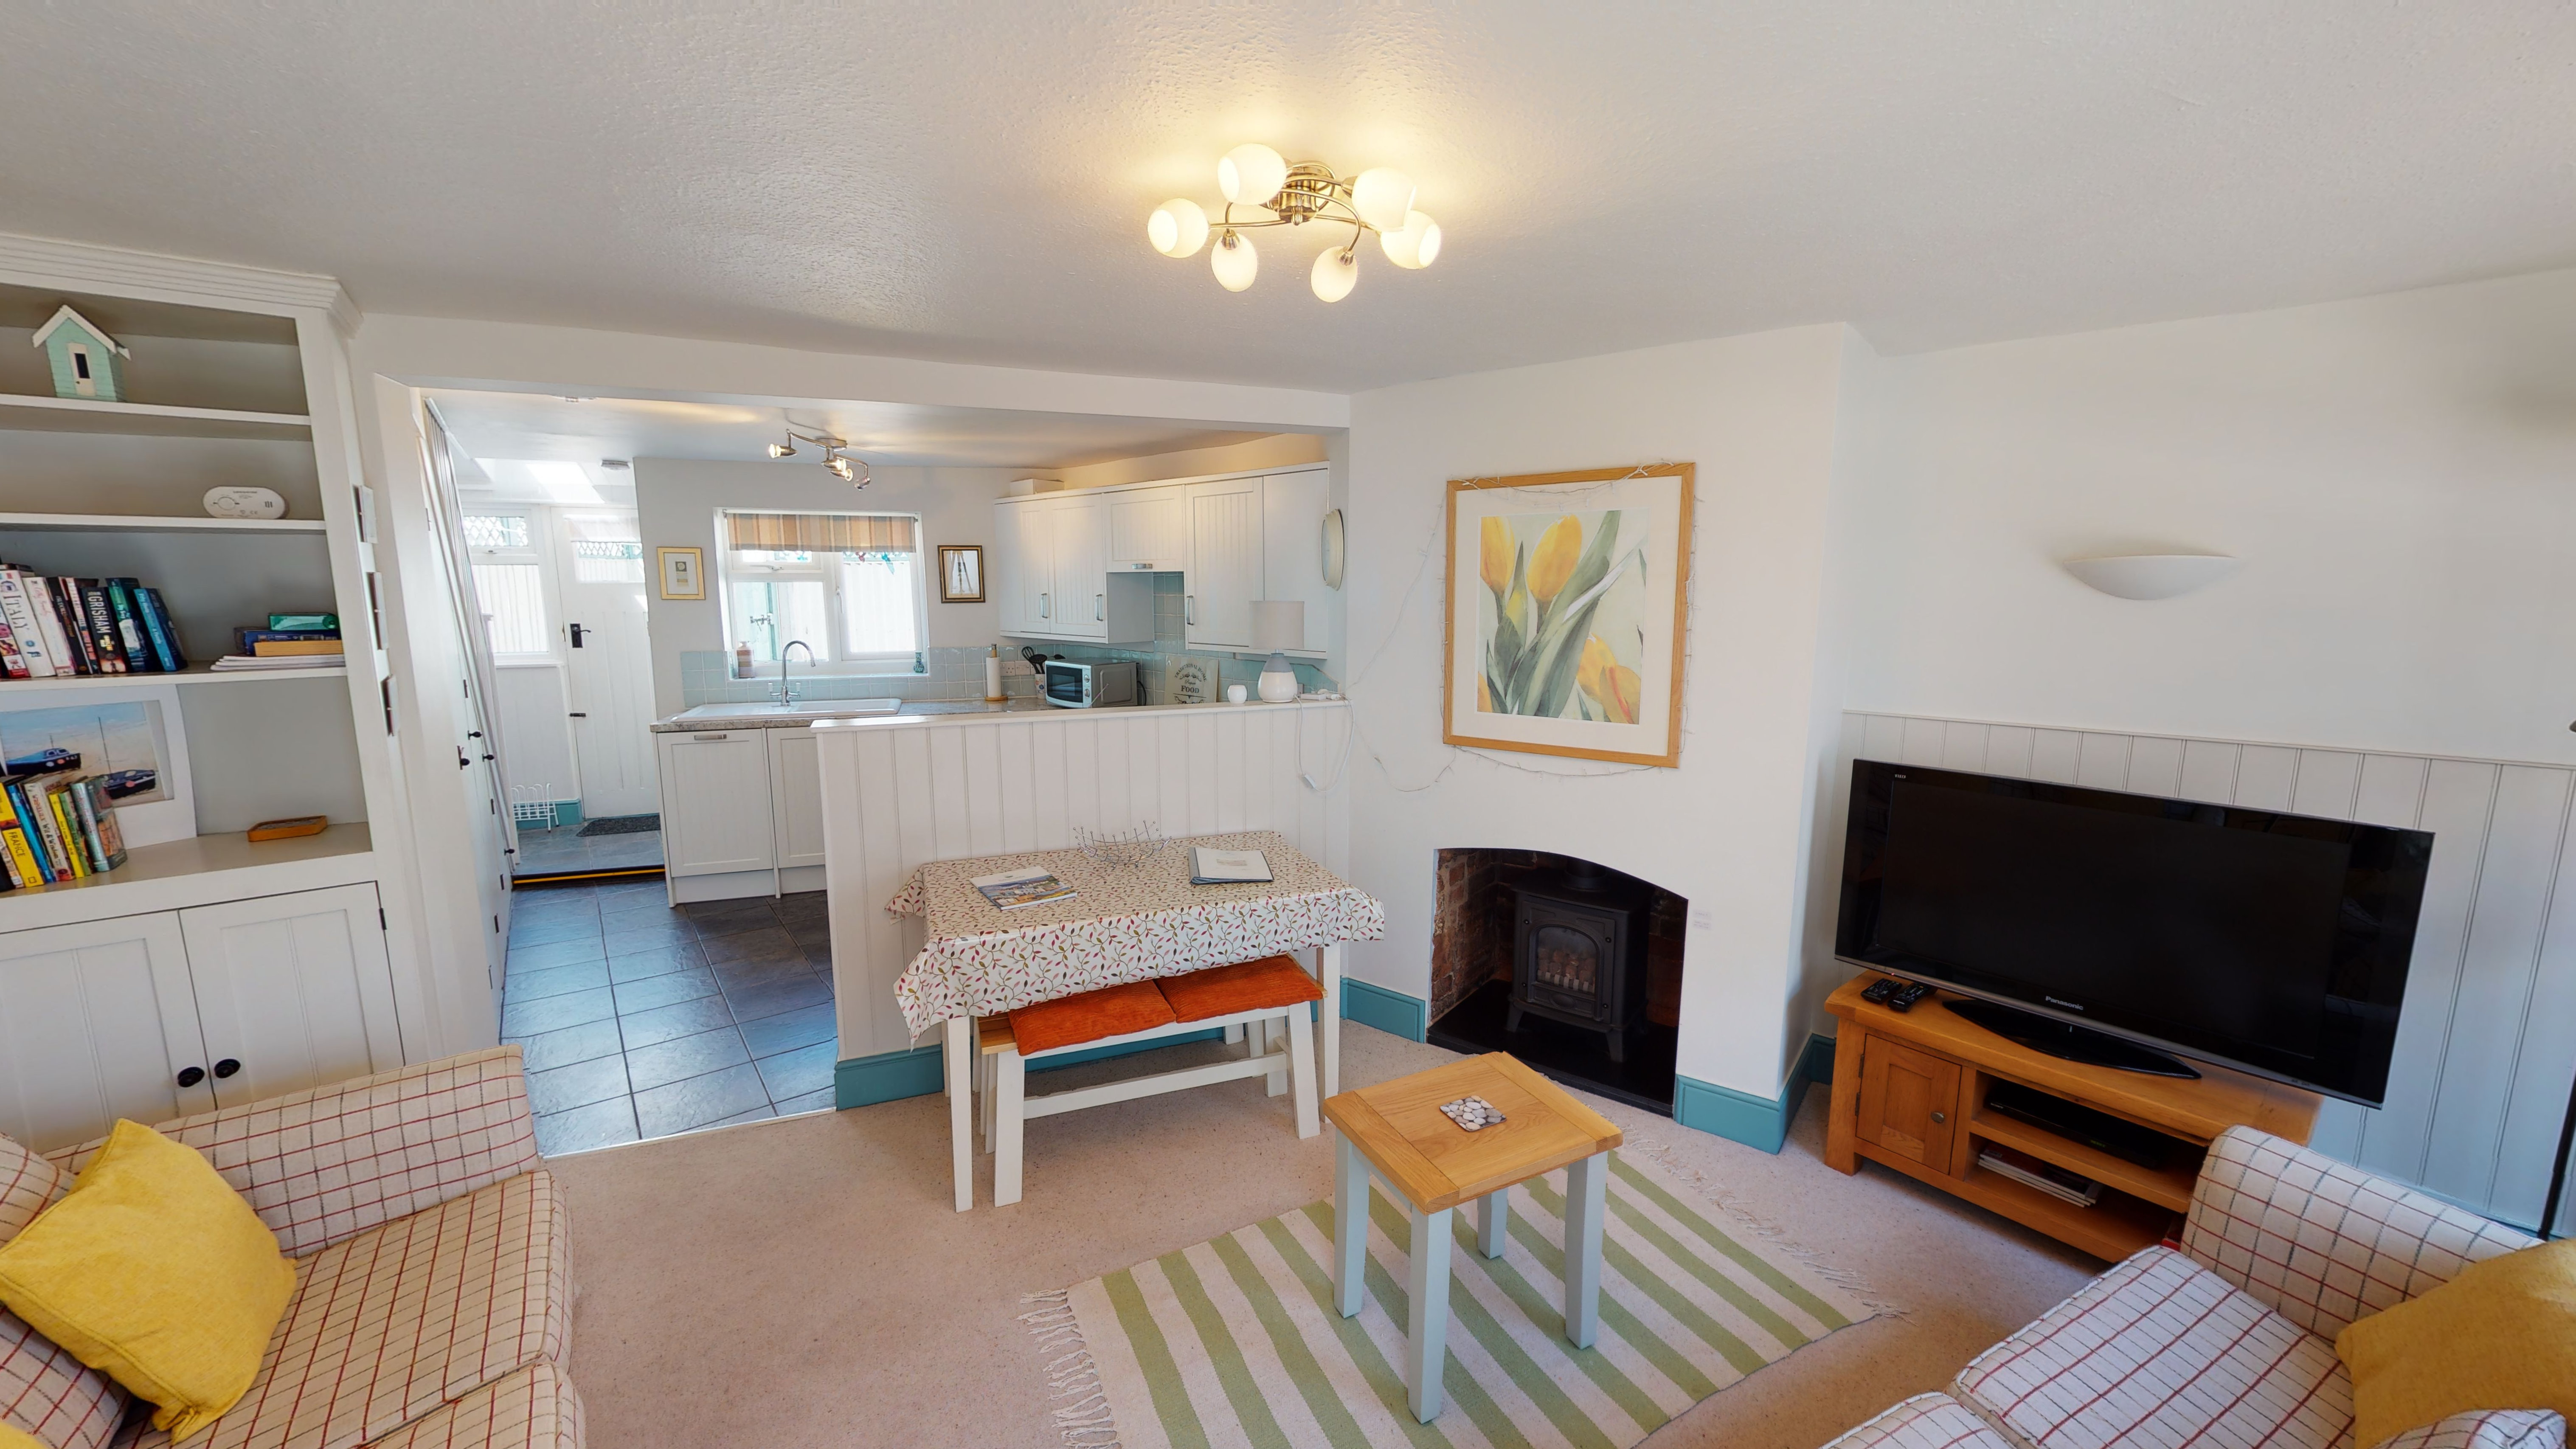 Seagull Cottage 07252020 113820